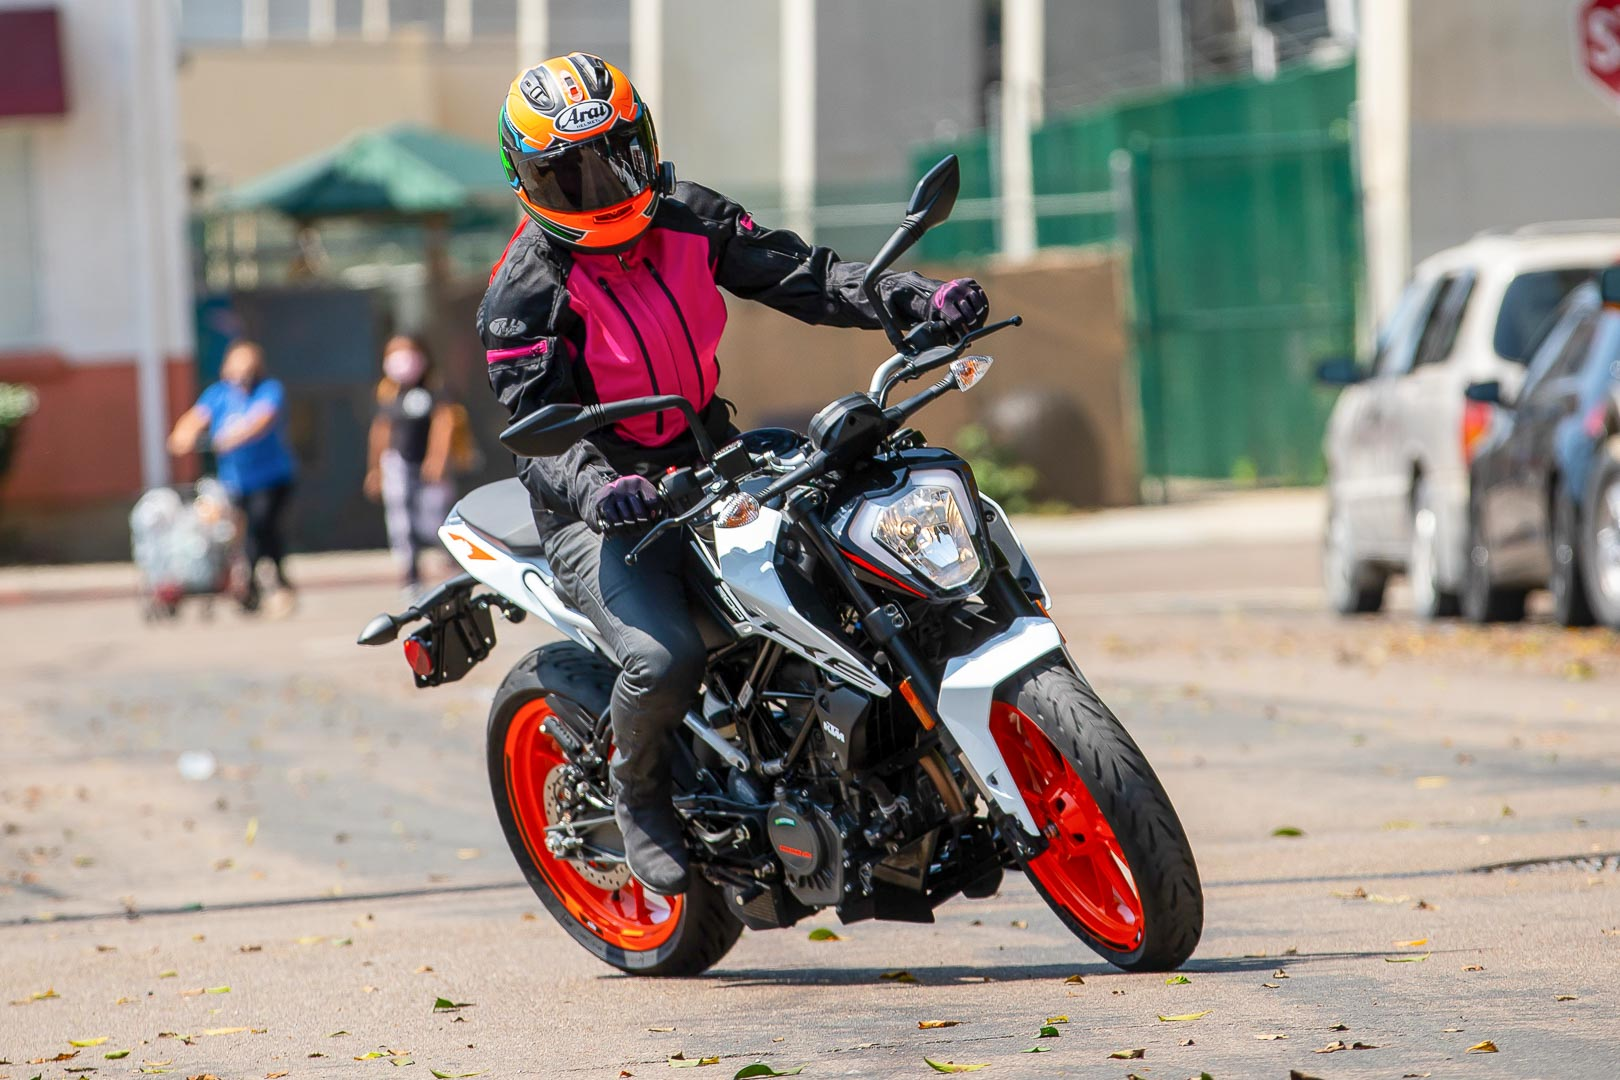 2020 KTM 200 Duke Review: Urban Motorcycle